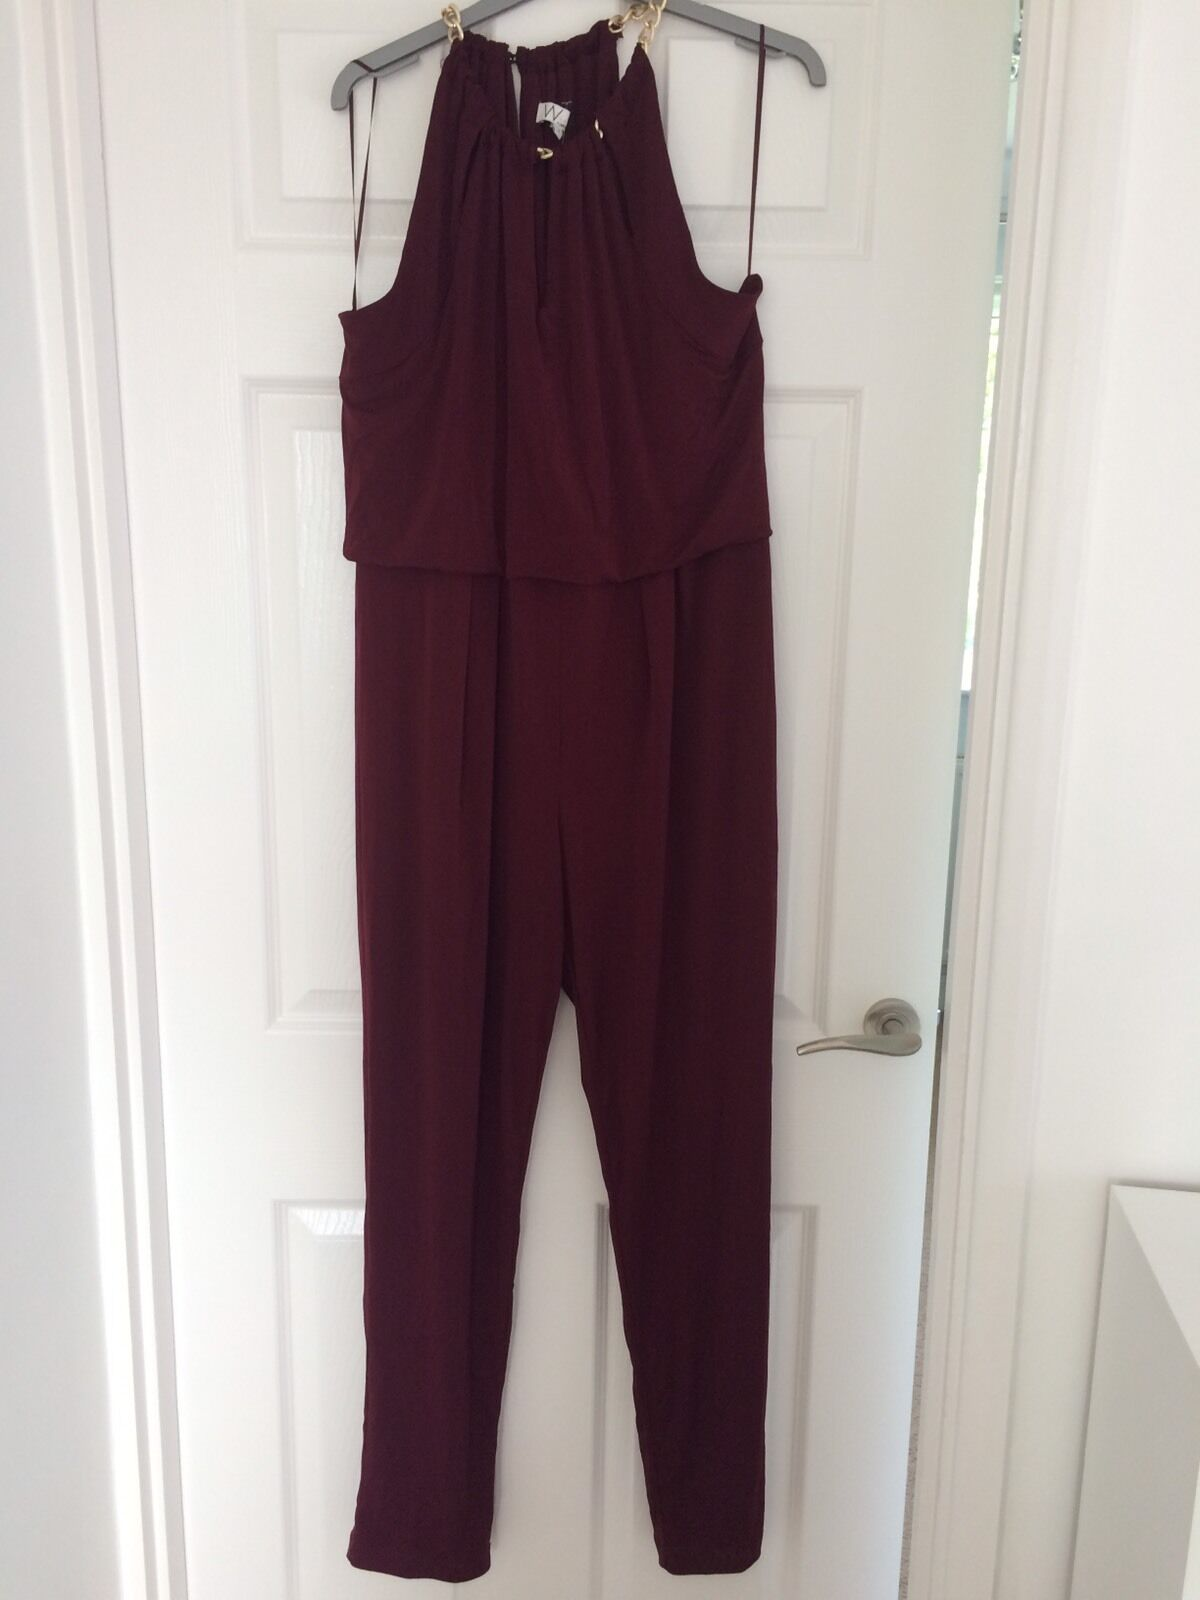 WALLIS PLUM PURPLE JUMPSUIT BODYSUIT ALL IN ONE  With gold Chain-Grecian-14